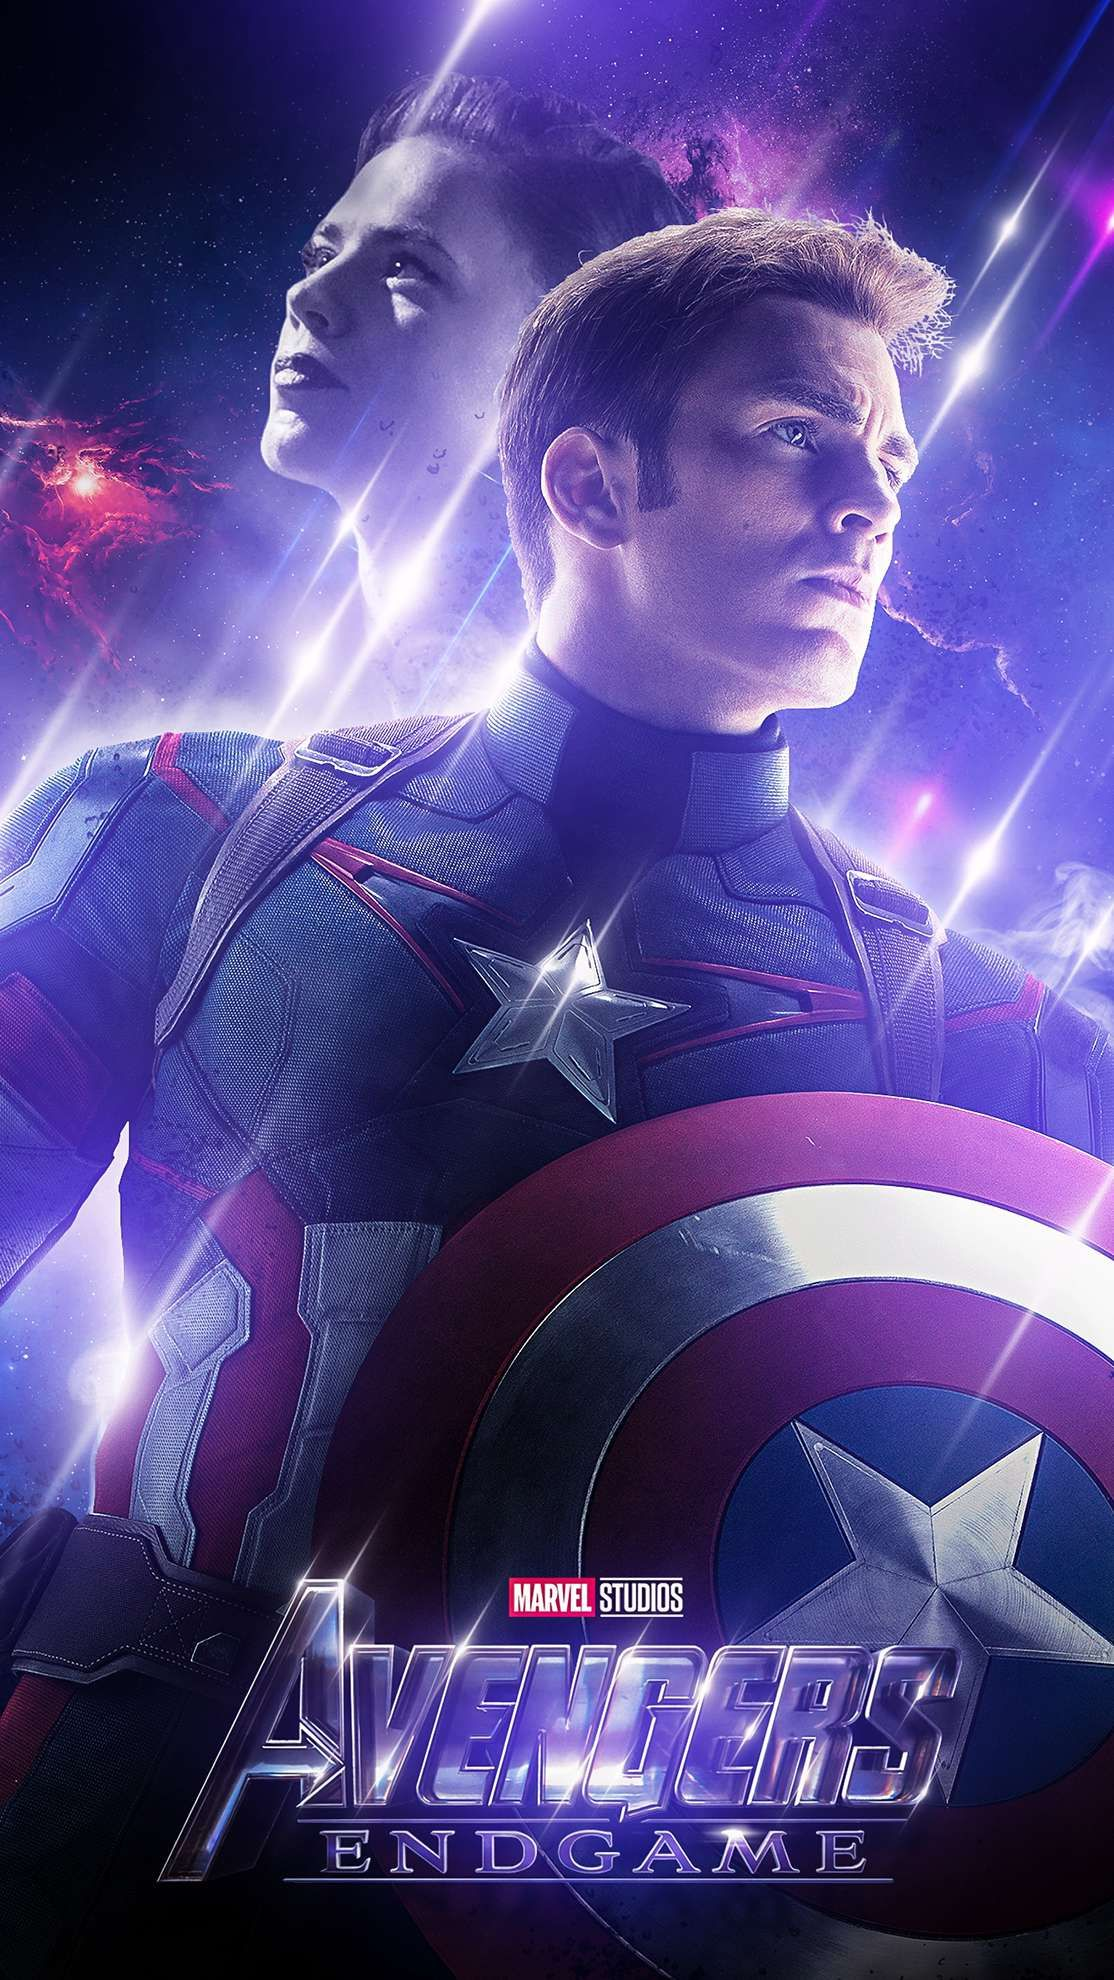 Avengers Endgame Captain America Past Iphone Wallpaper In 2020 With Images Captain America Wallpaper Captain America Poster Avengers